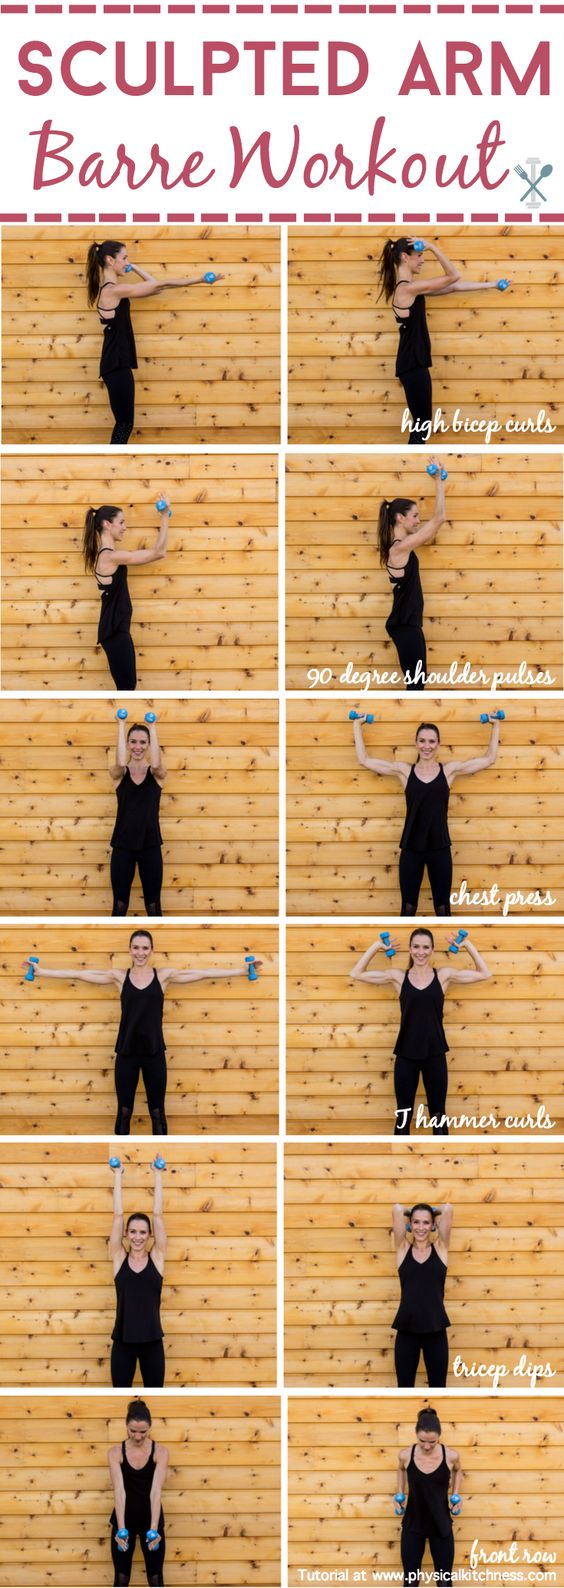 Sculpt and tone your arms in ways you never imagined with this barre inspired arm workout. Little movements with lots of repetition will work arm muscles in miraculous ways! Shaping your biceps, shoulders, and triceps. Home or gym workout!: